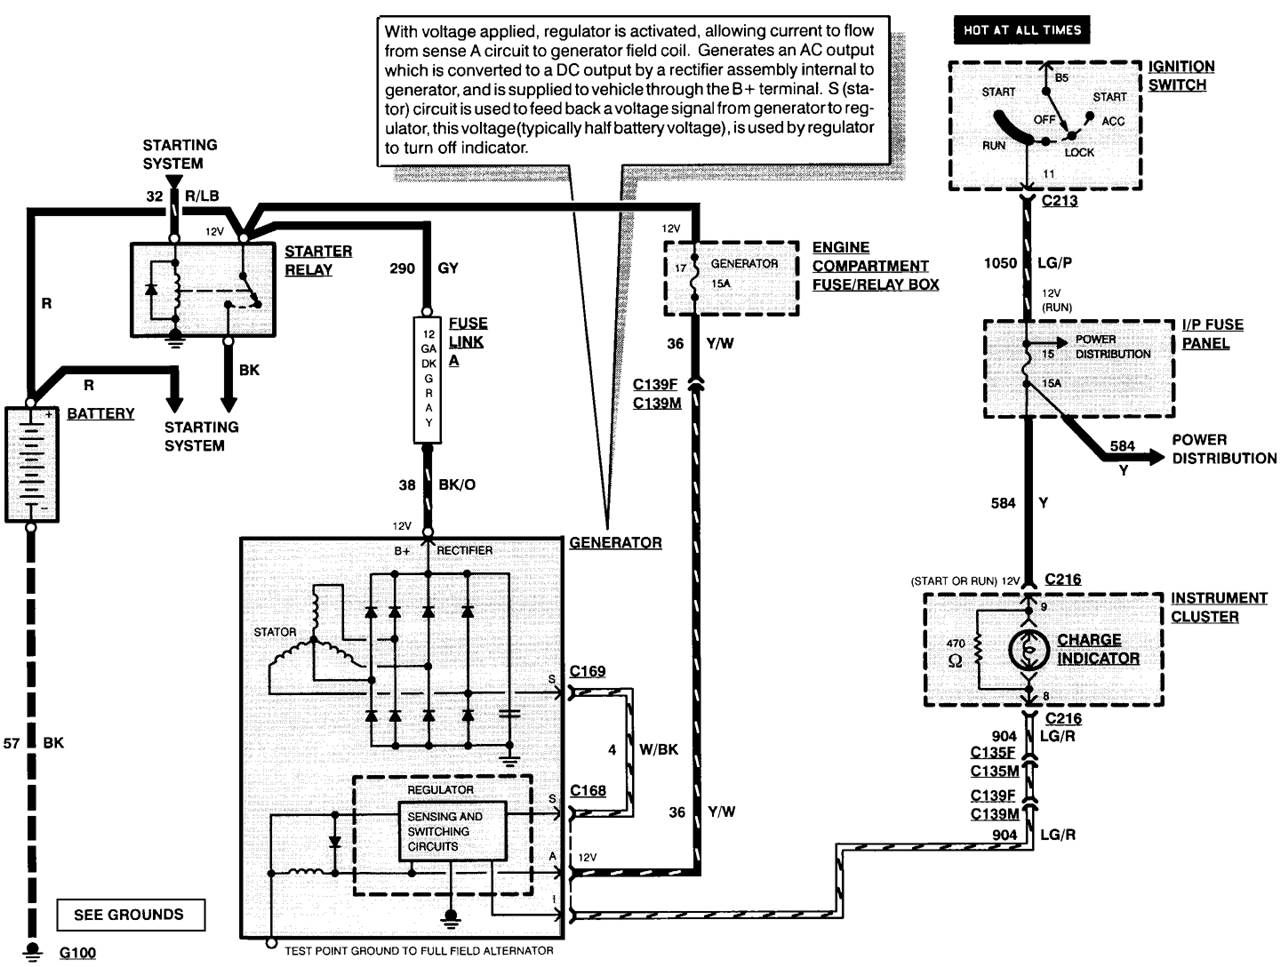 94 gm alternator wiring diagram